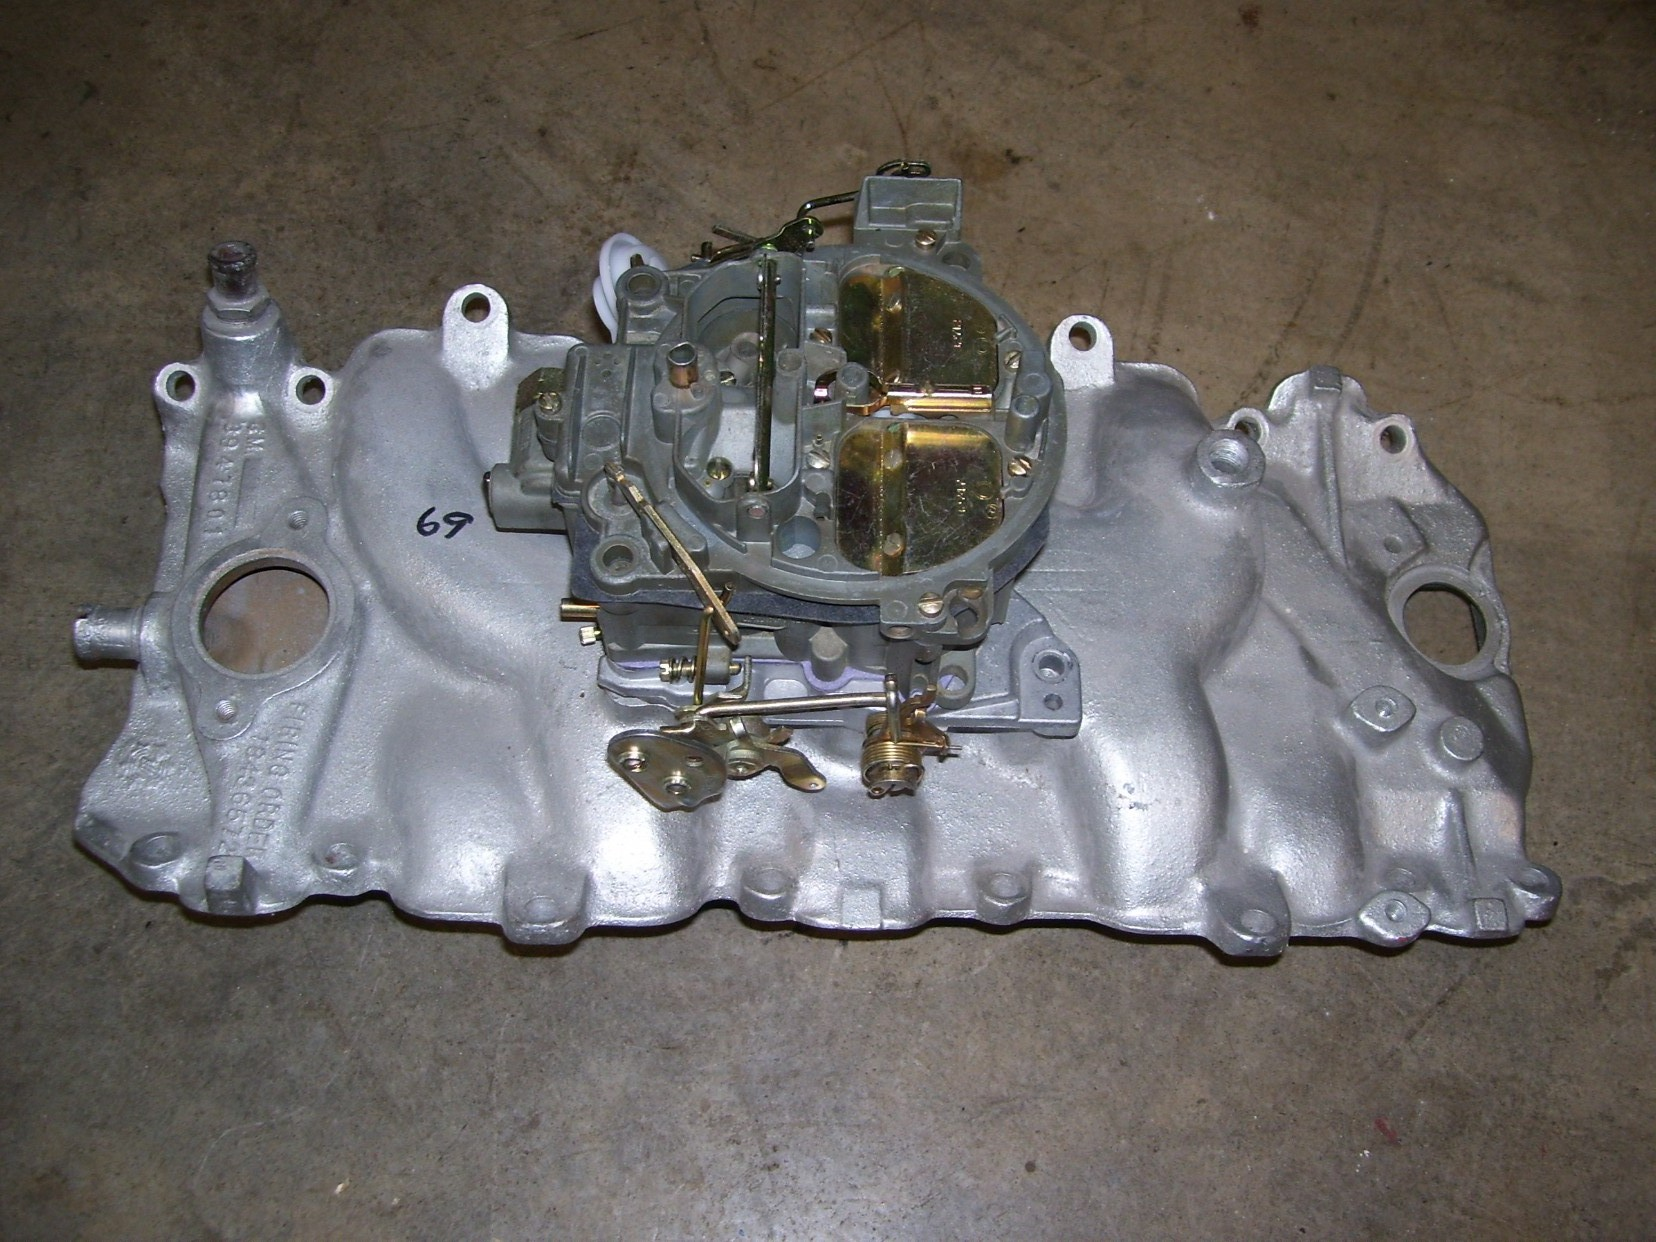 Snow Flake Corvette Intake And Rochester Carb